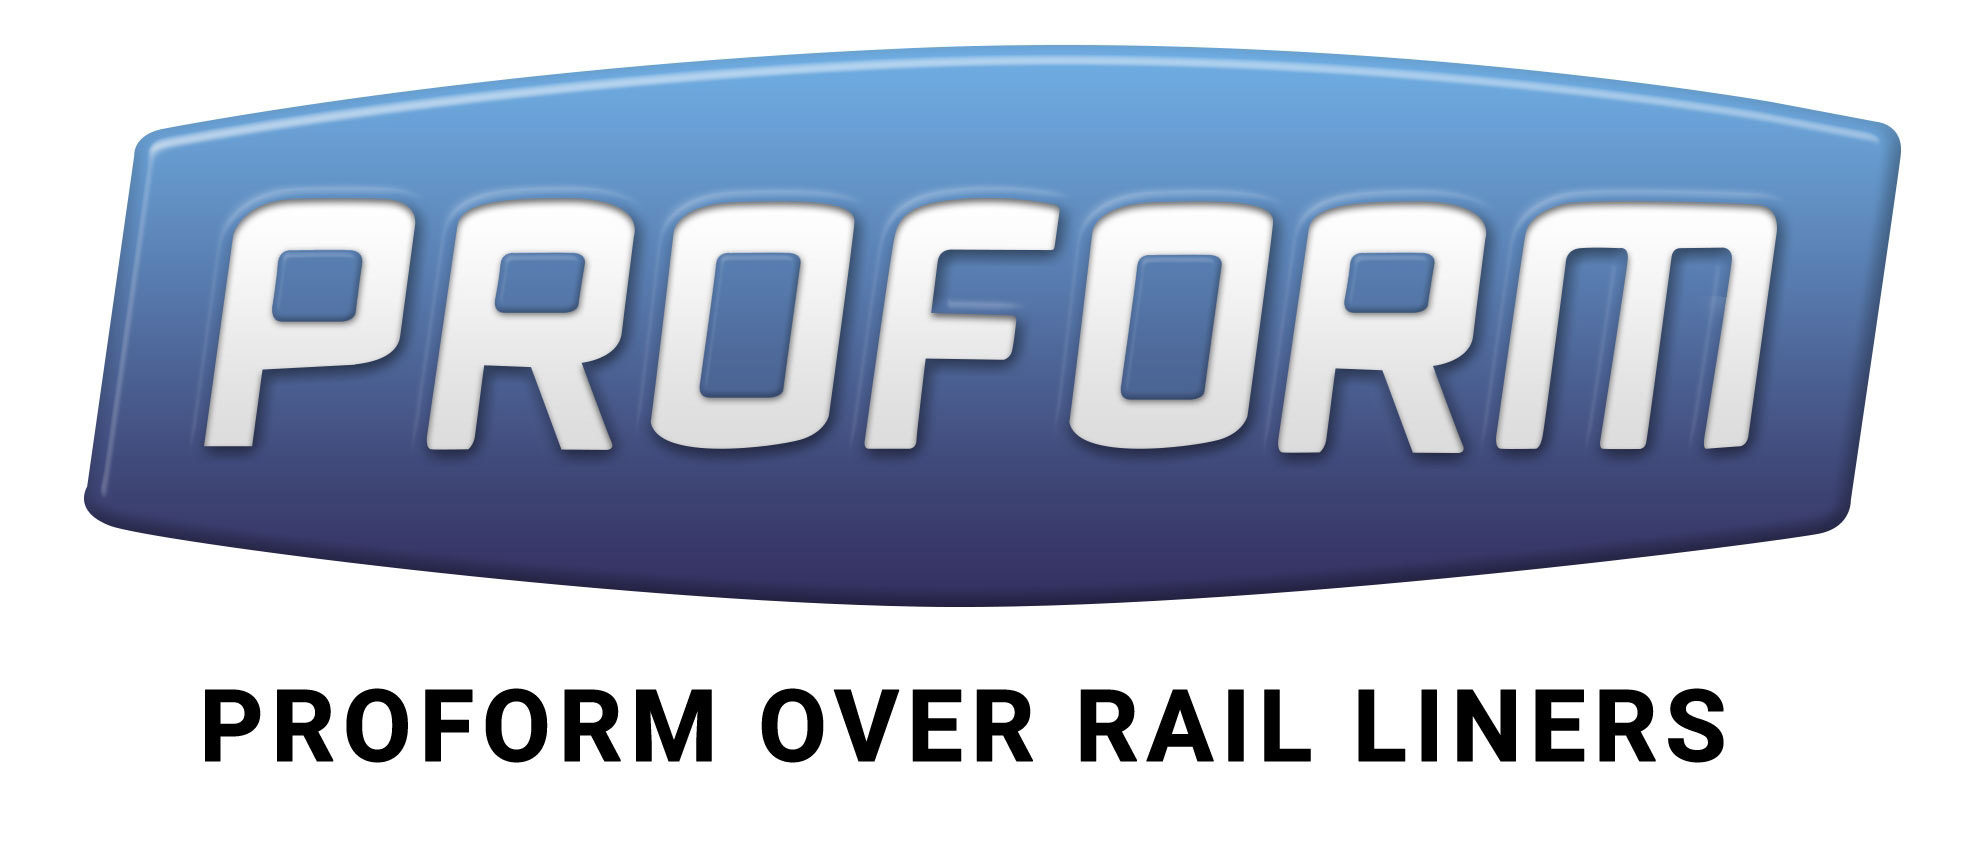 Proform over rail liner